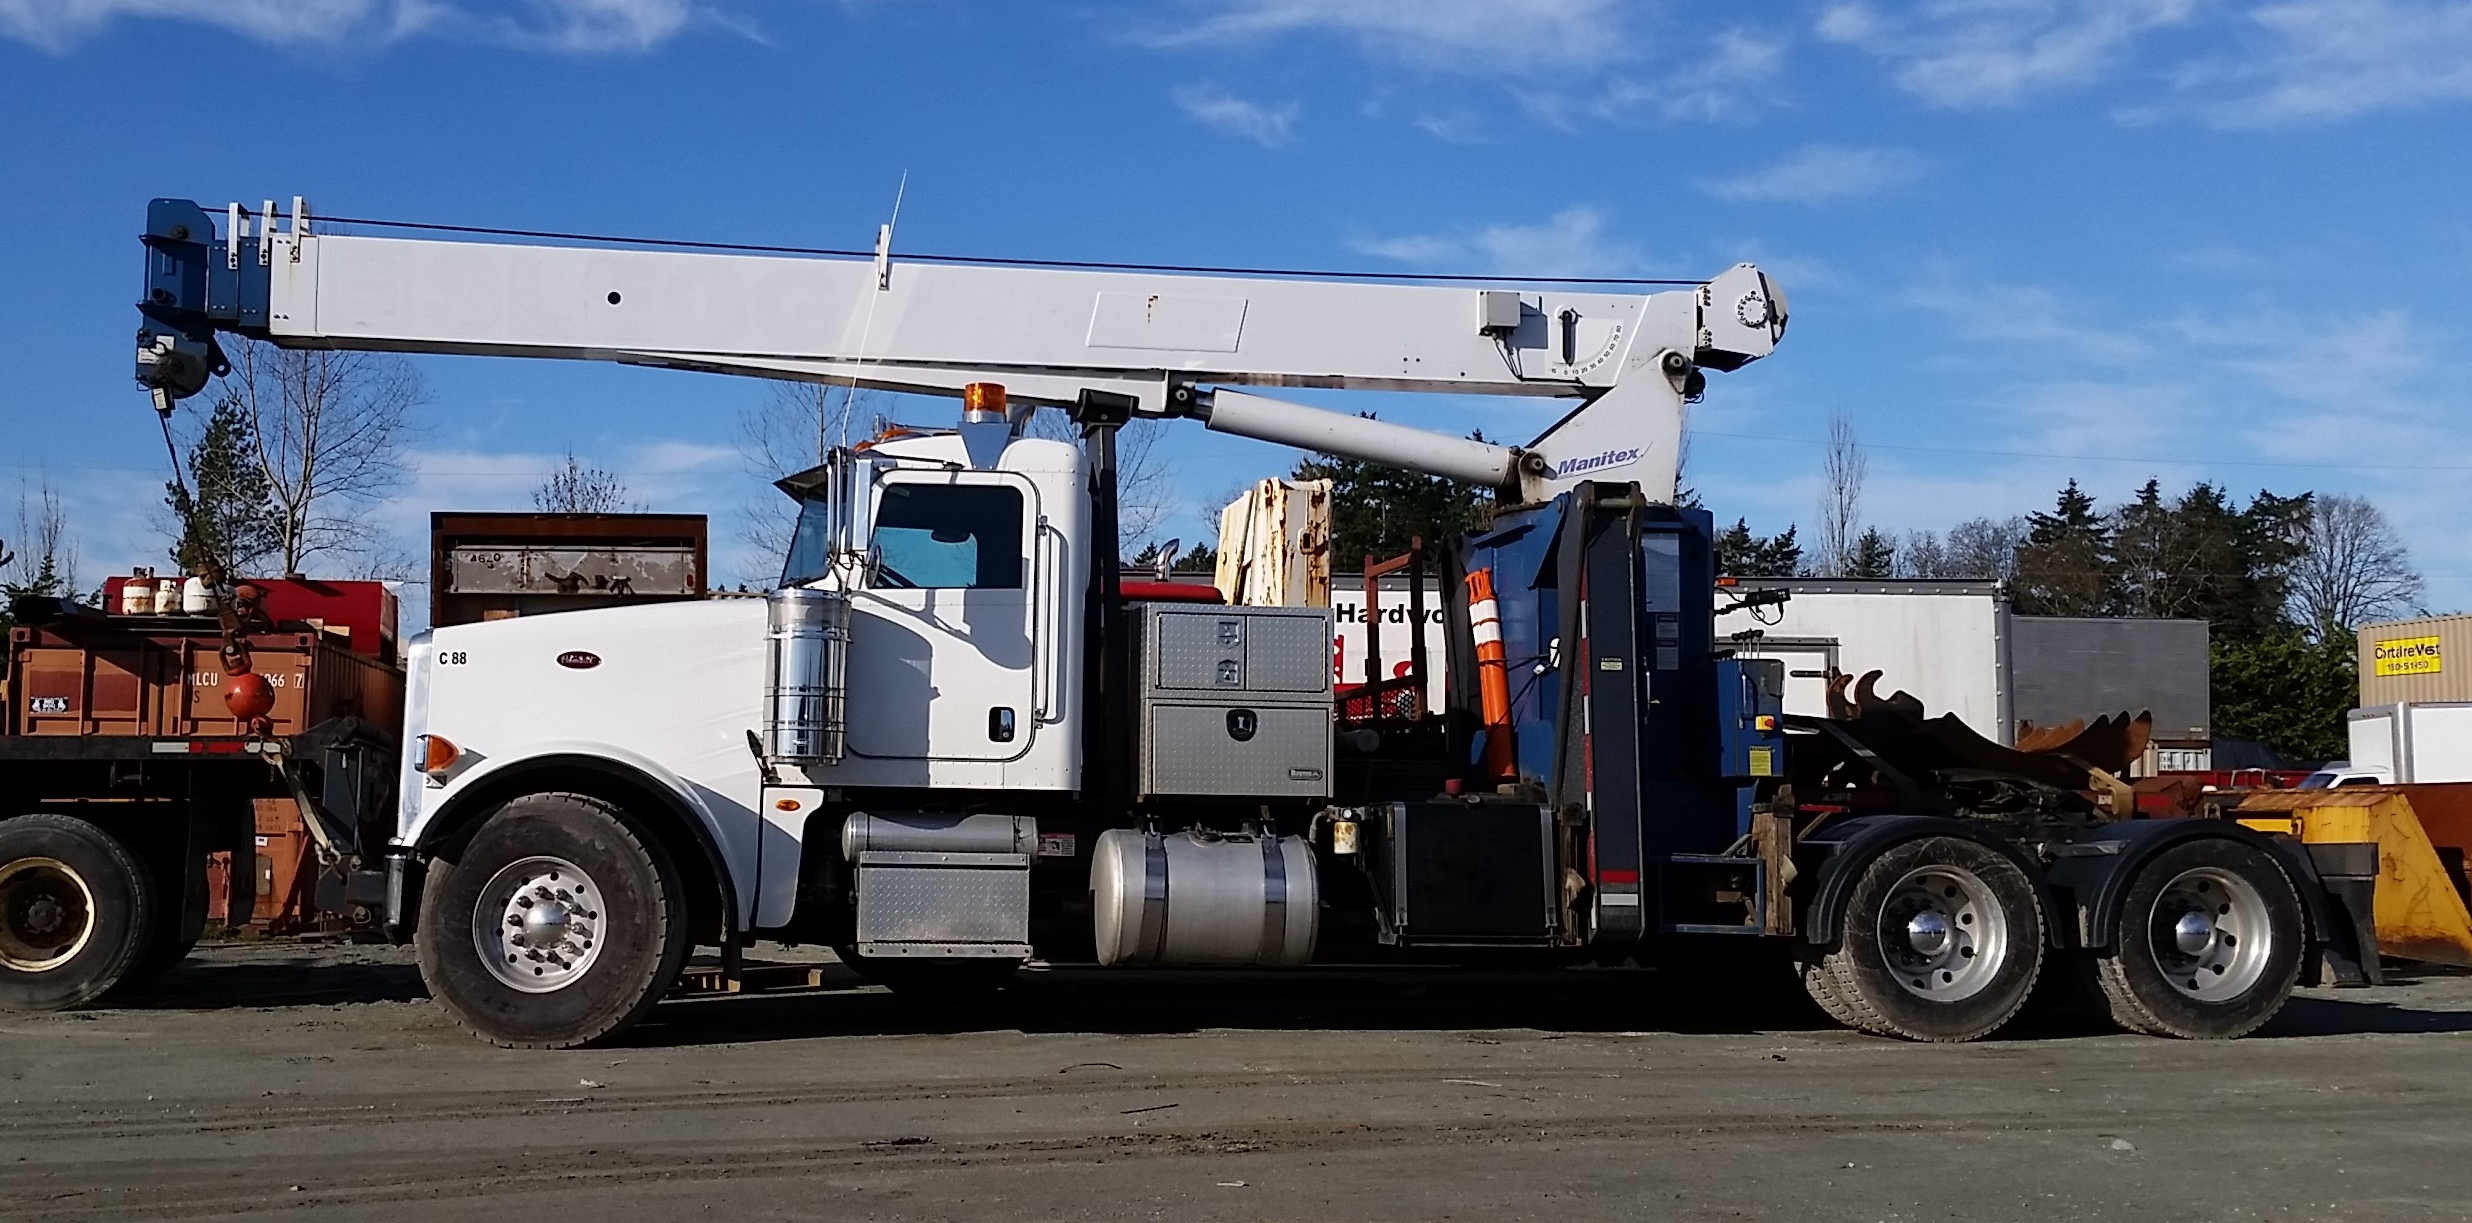 Photo of 2011 Peterbilt - Manitex 2281 Crane